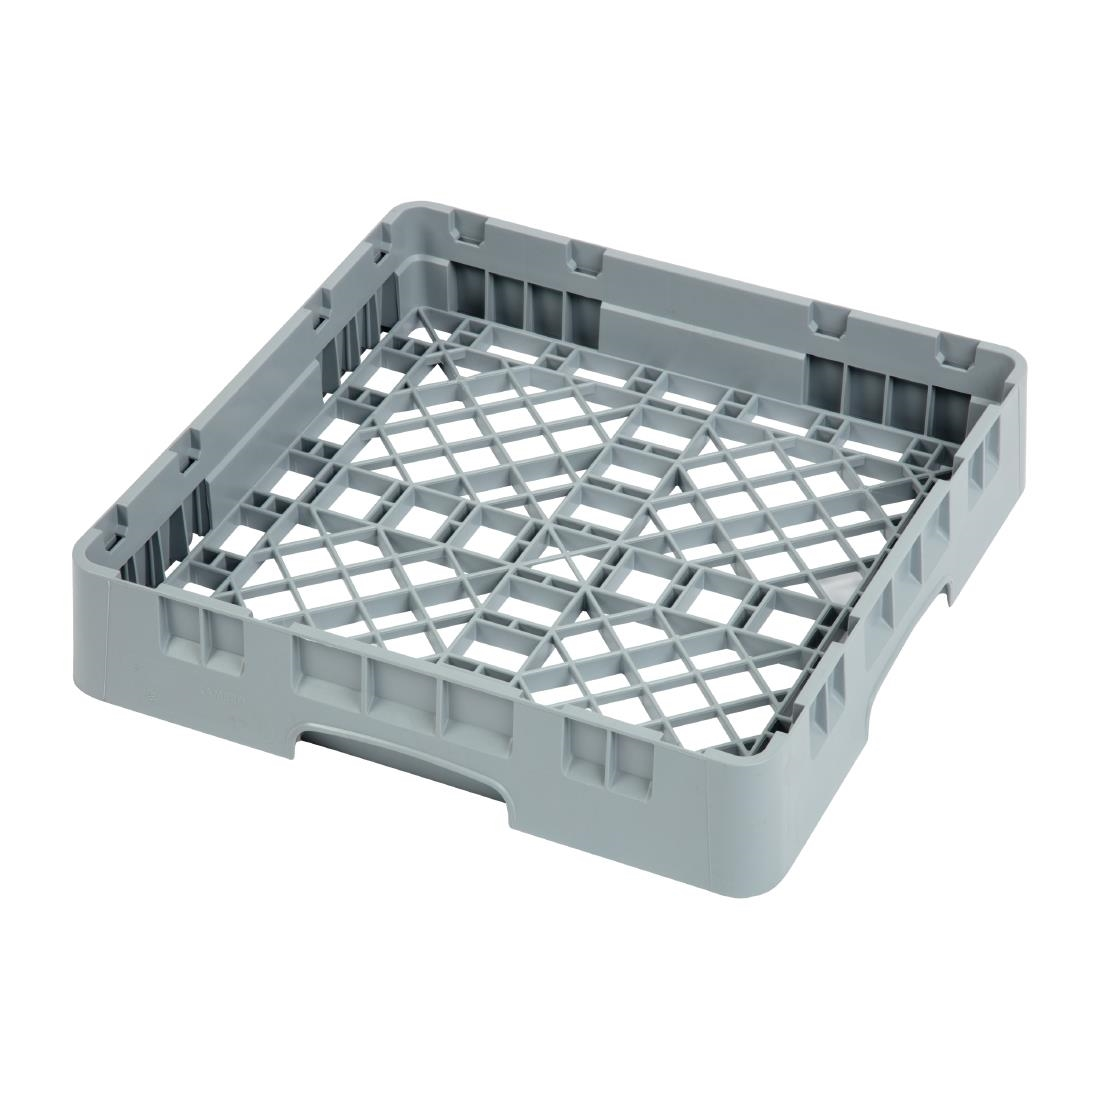 Cambro Full Base Rack Max Height 83mm